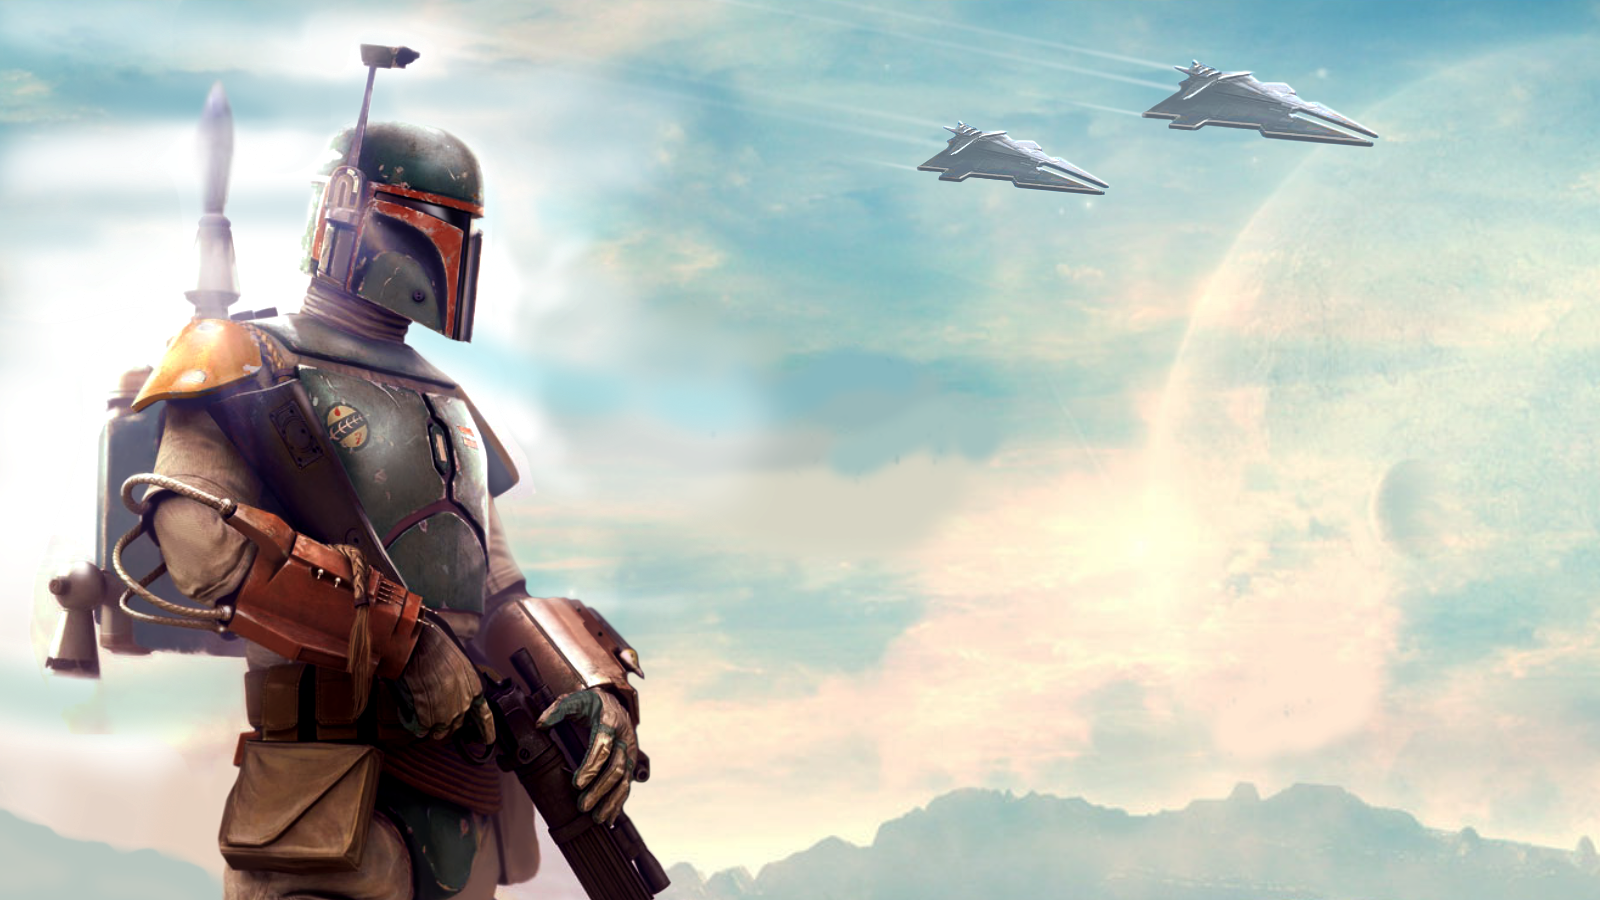 Boba Fett is a Mandalorian warrior and bounty hunter Wallpaper and 1600x900